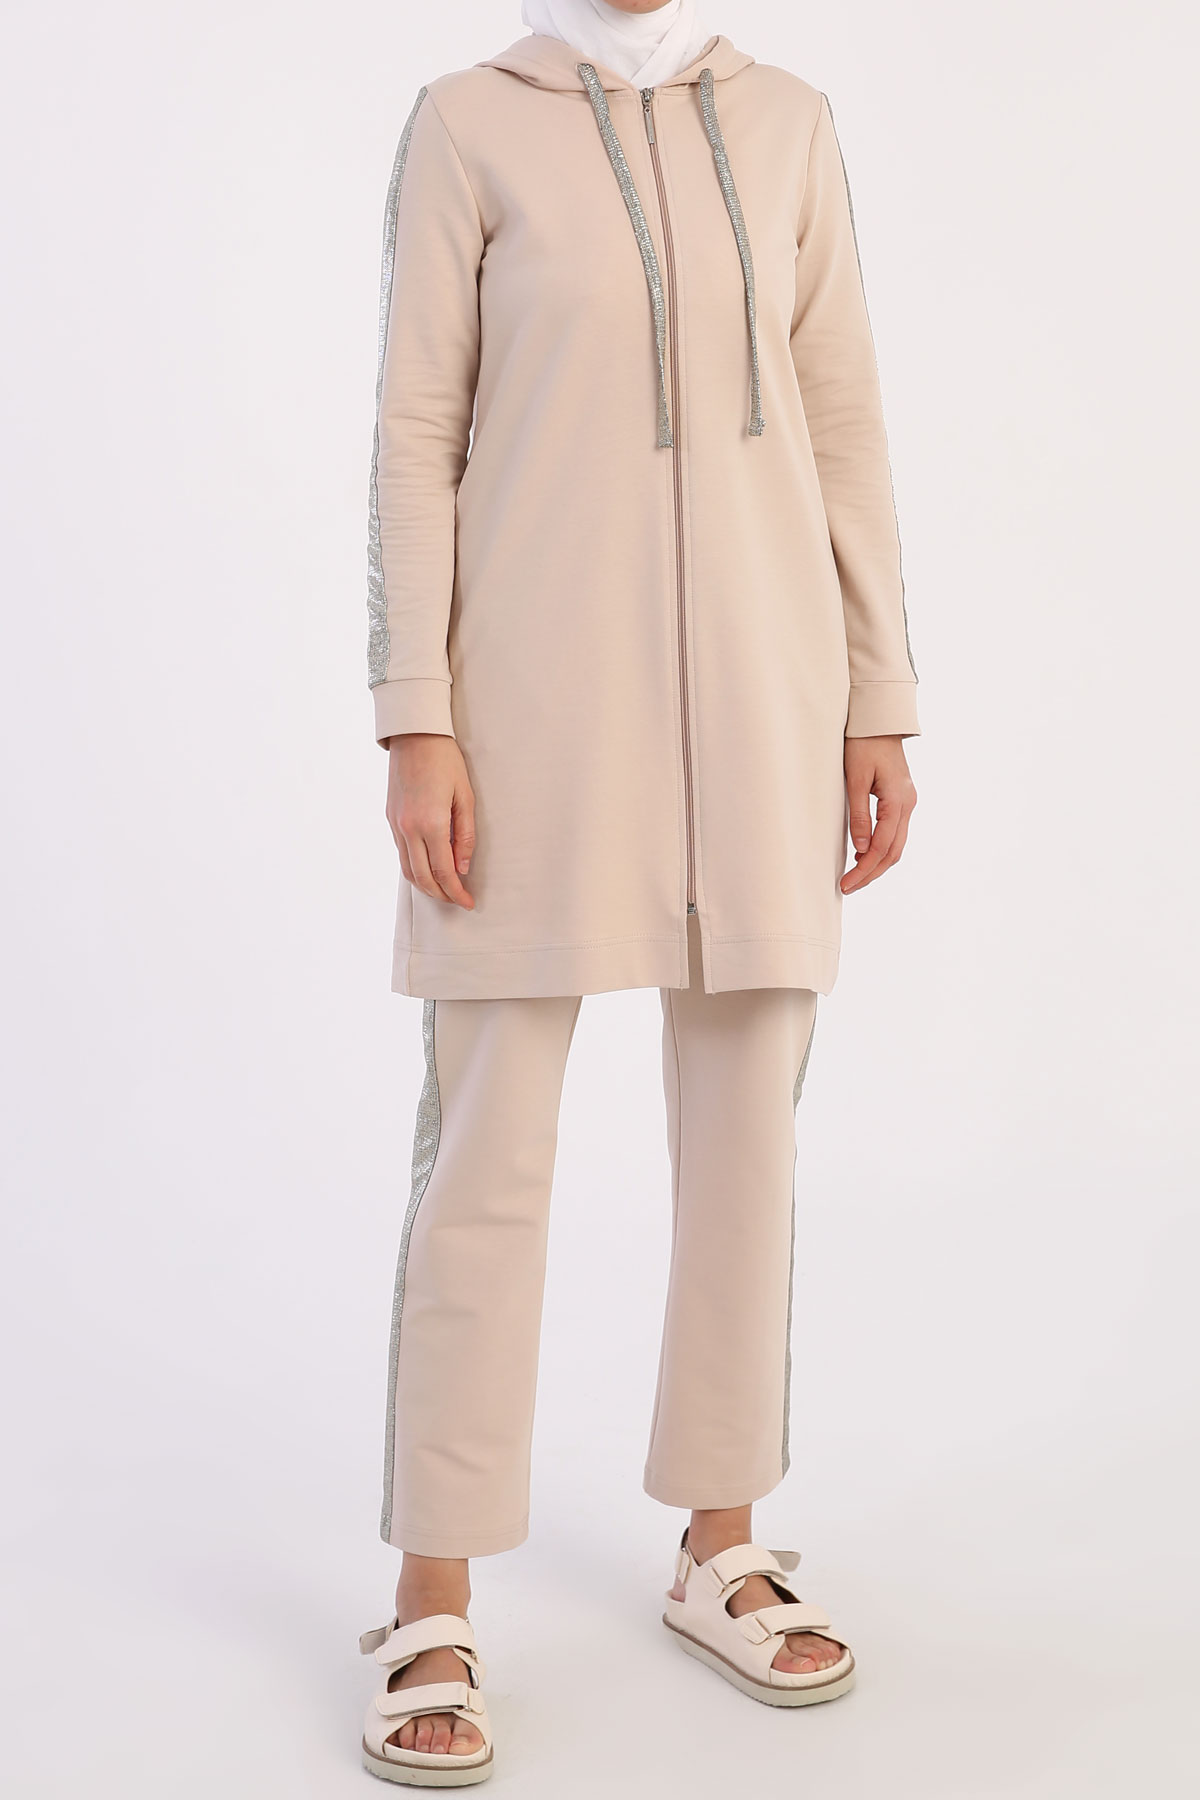 Hooded Plus Size Track Suit